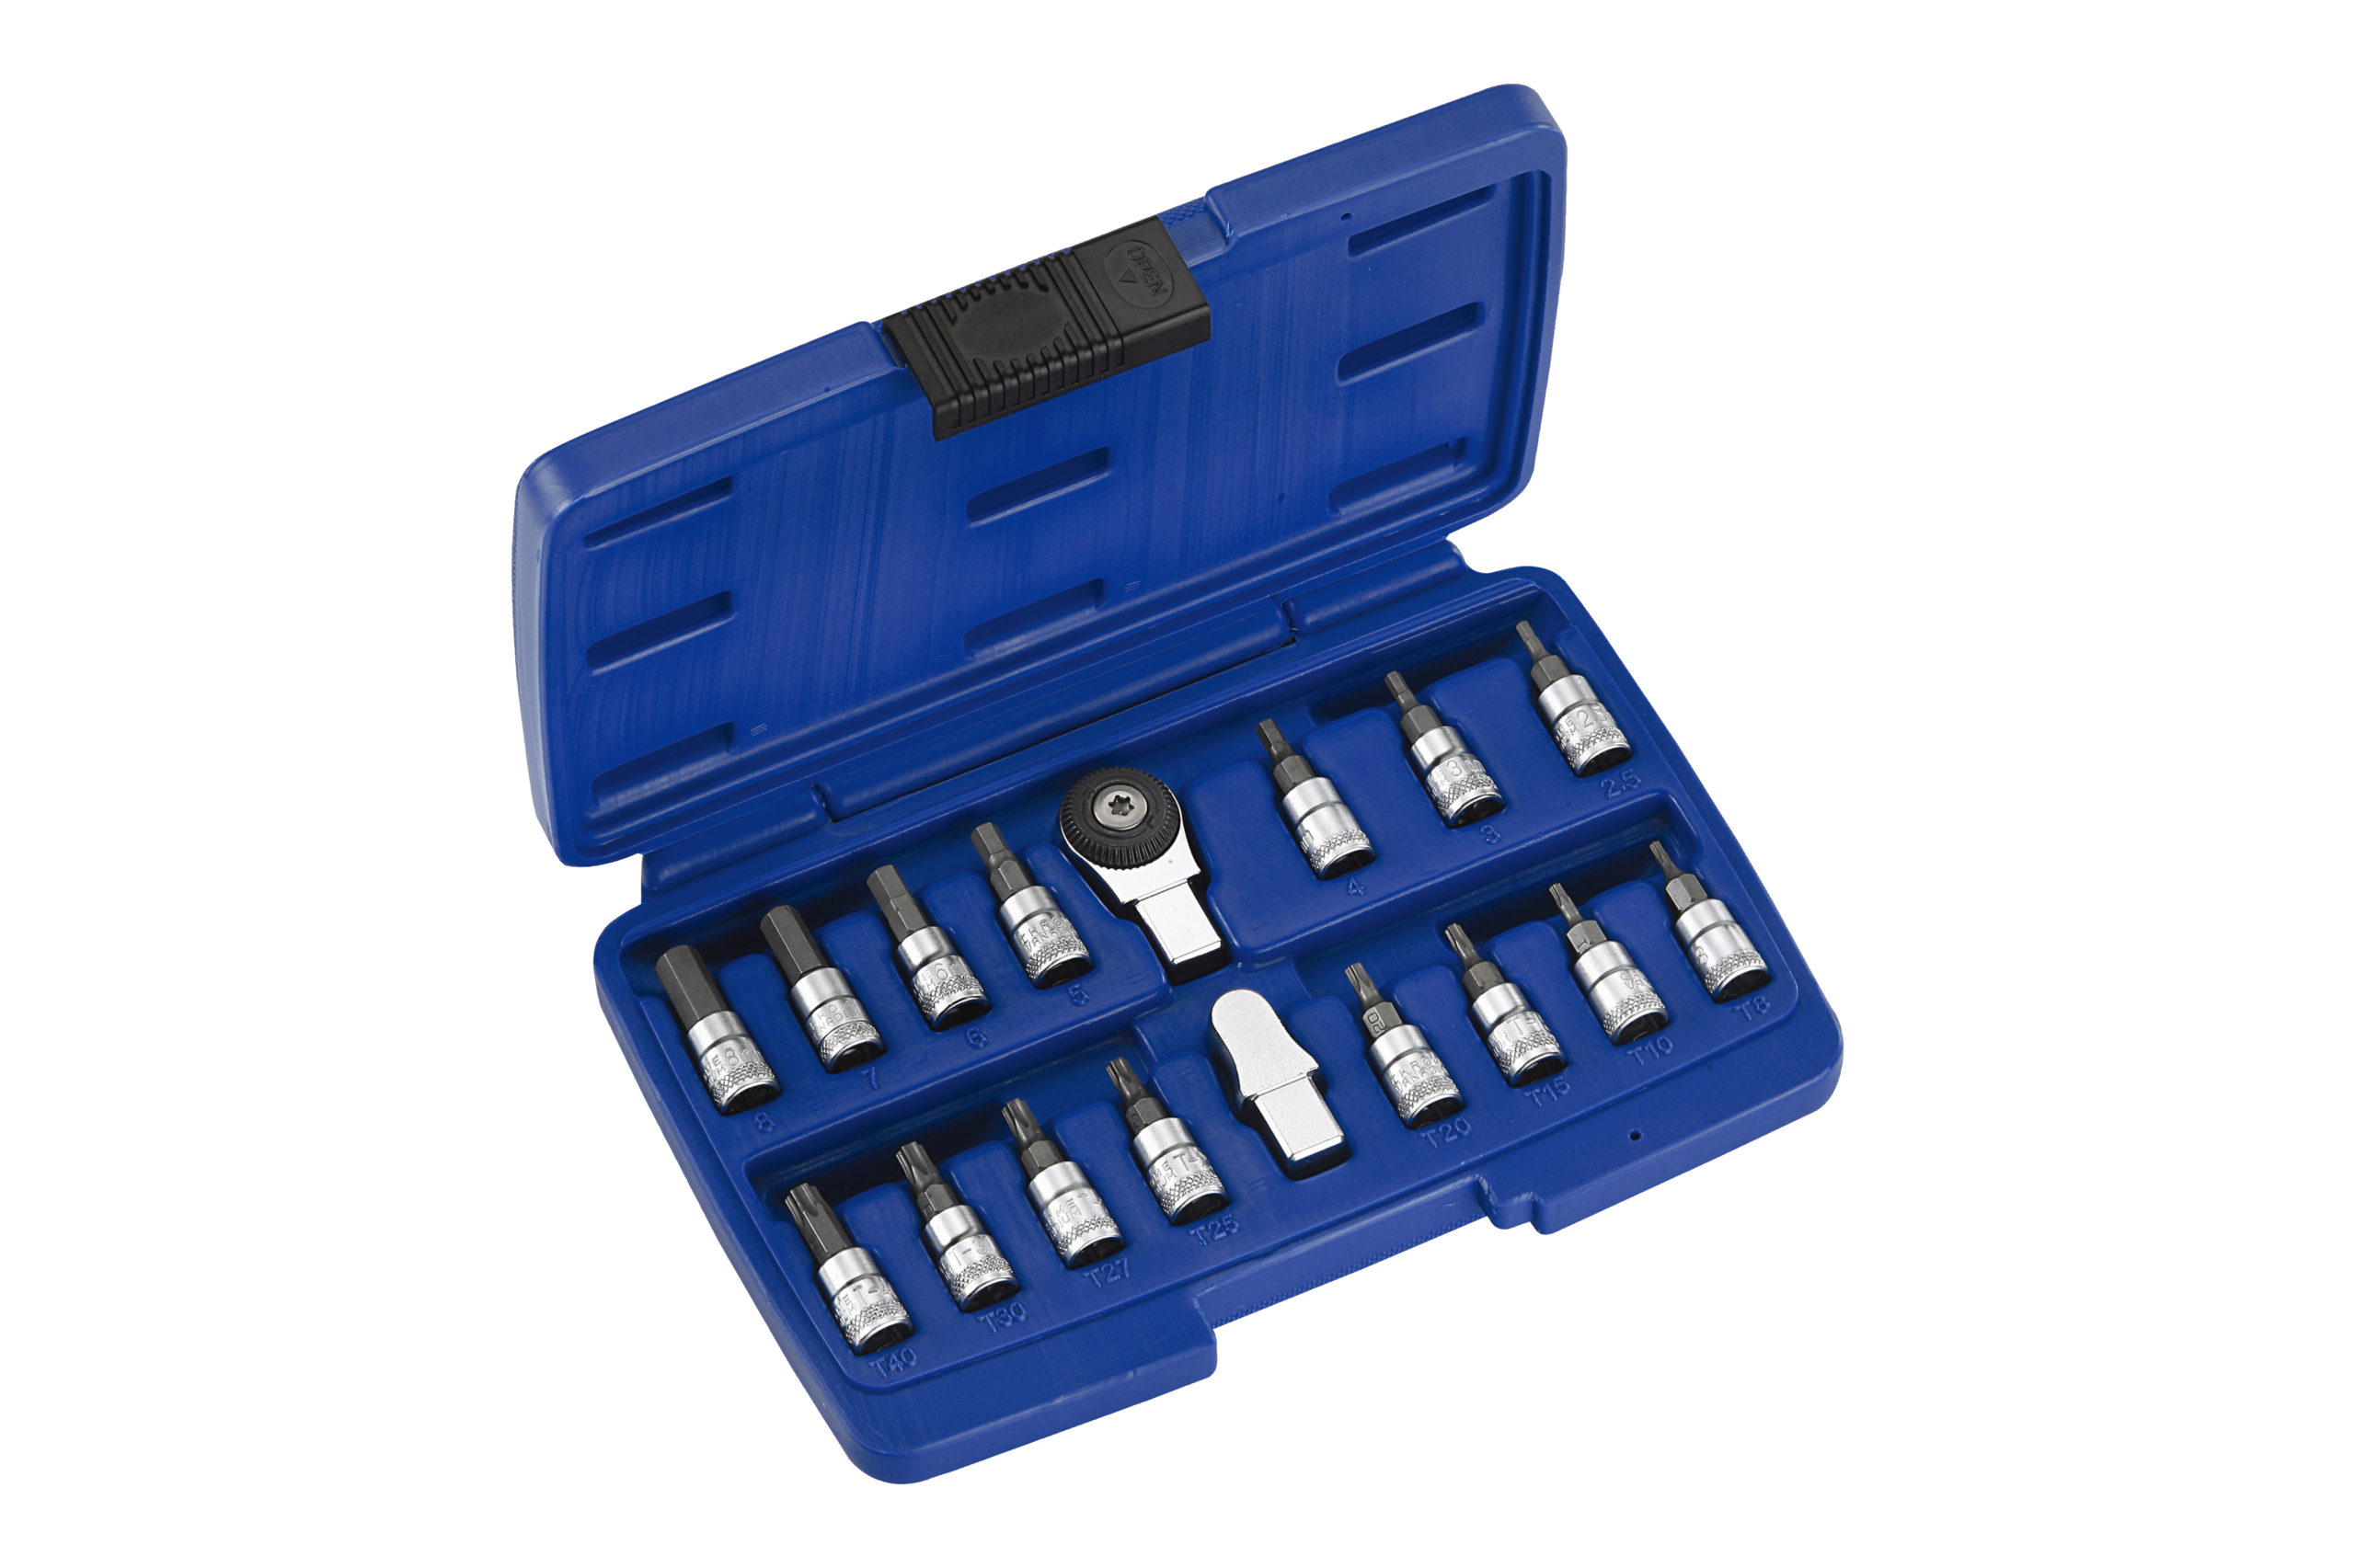 17PC Slim Insert & Ratchet Insert Bit Socket Set-1/4″ 9X12mm